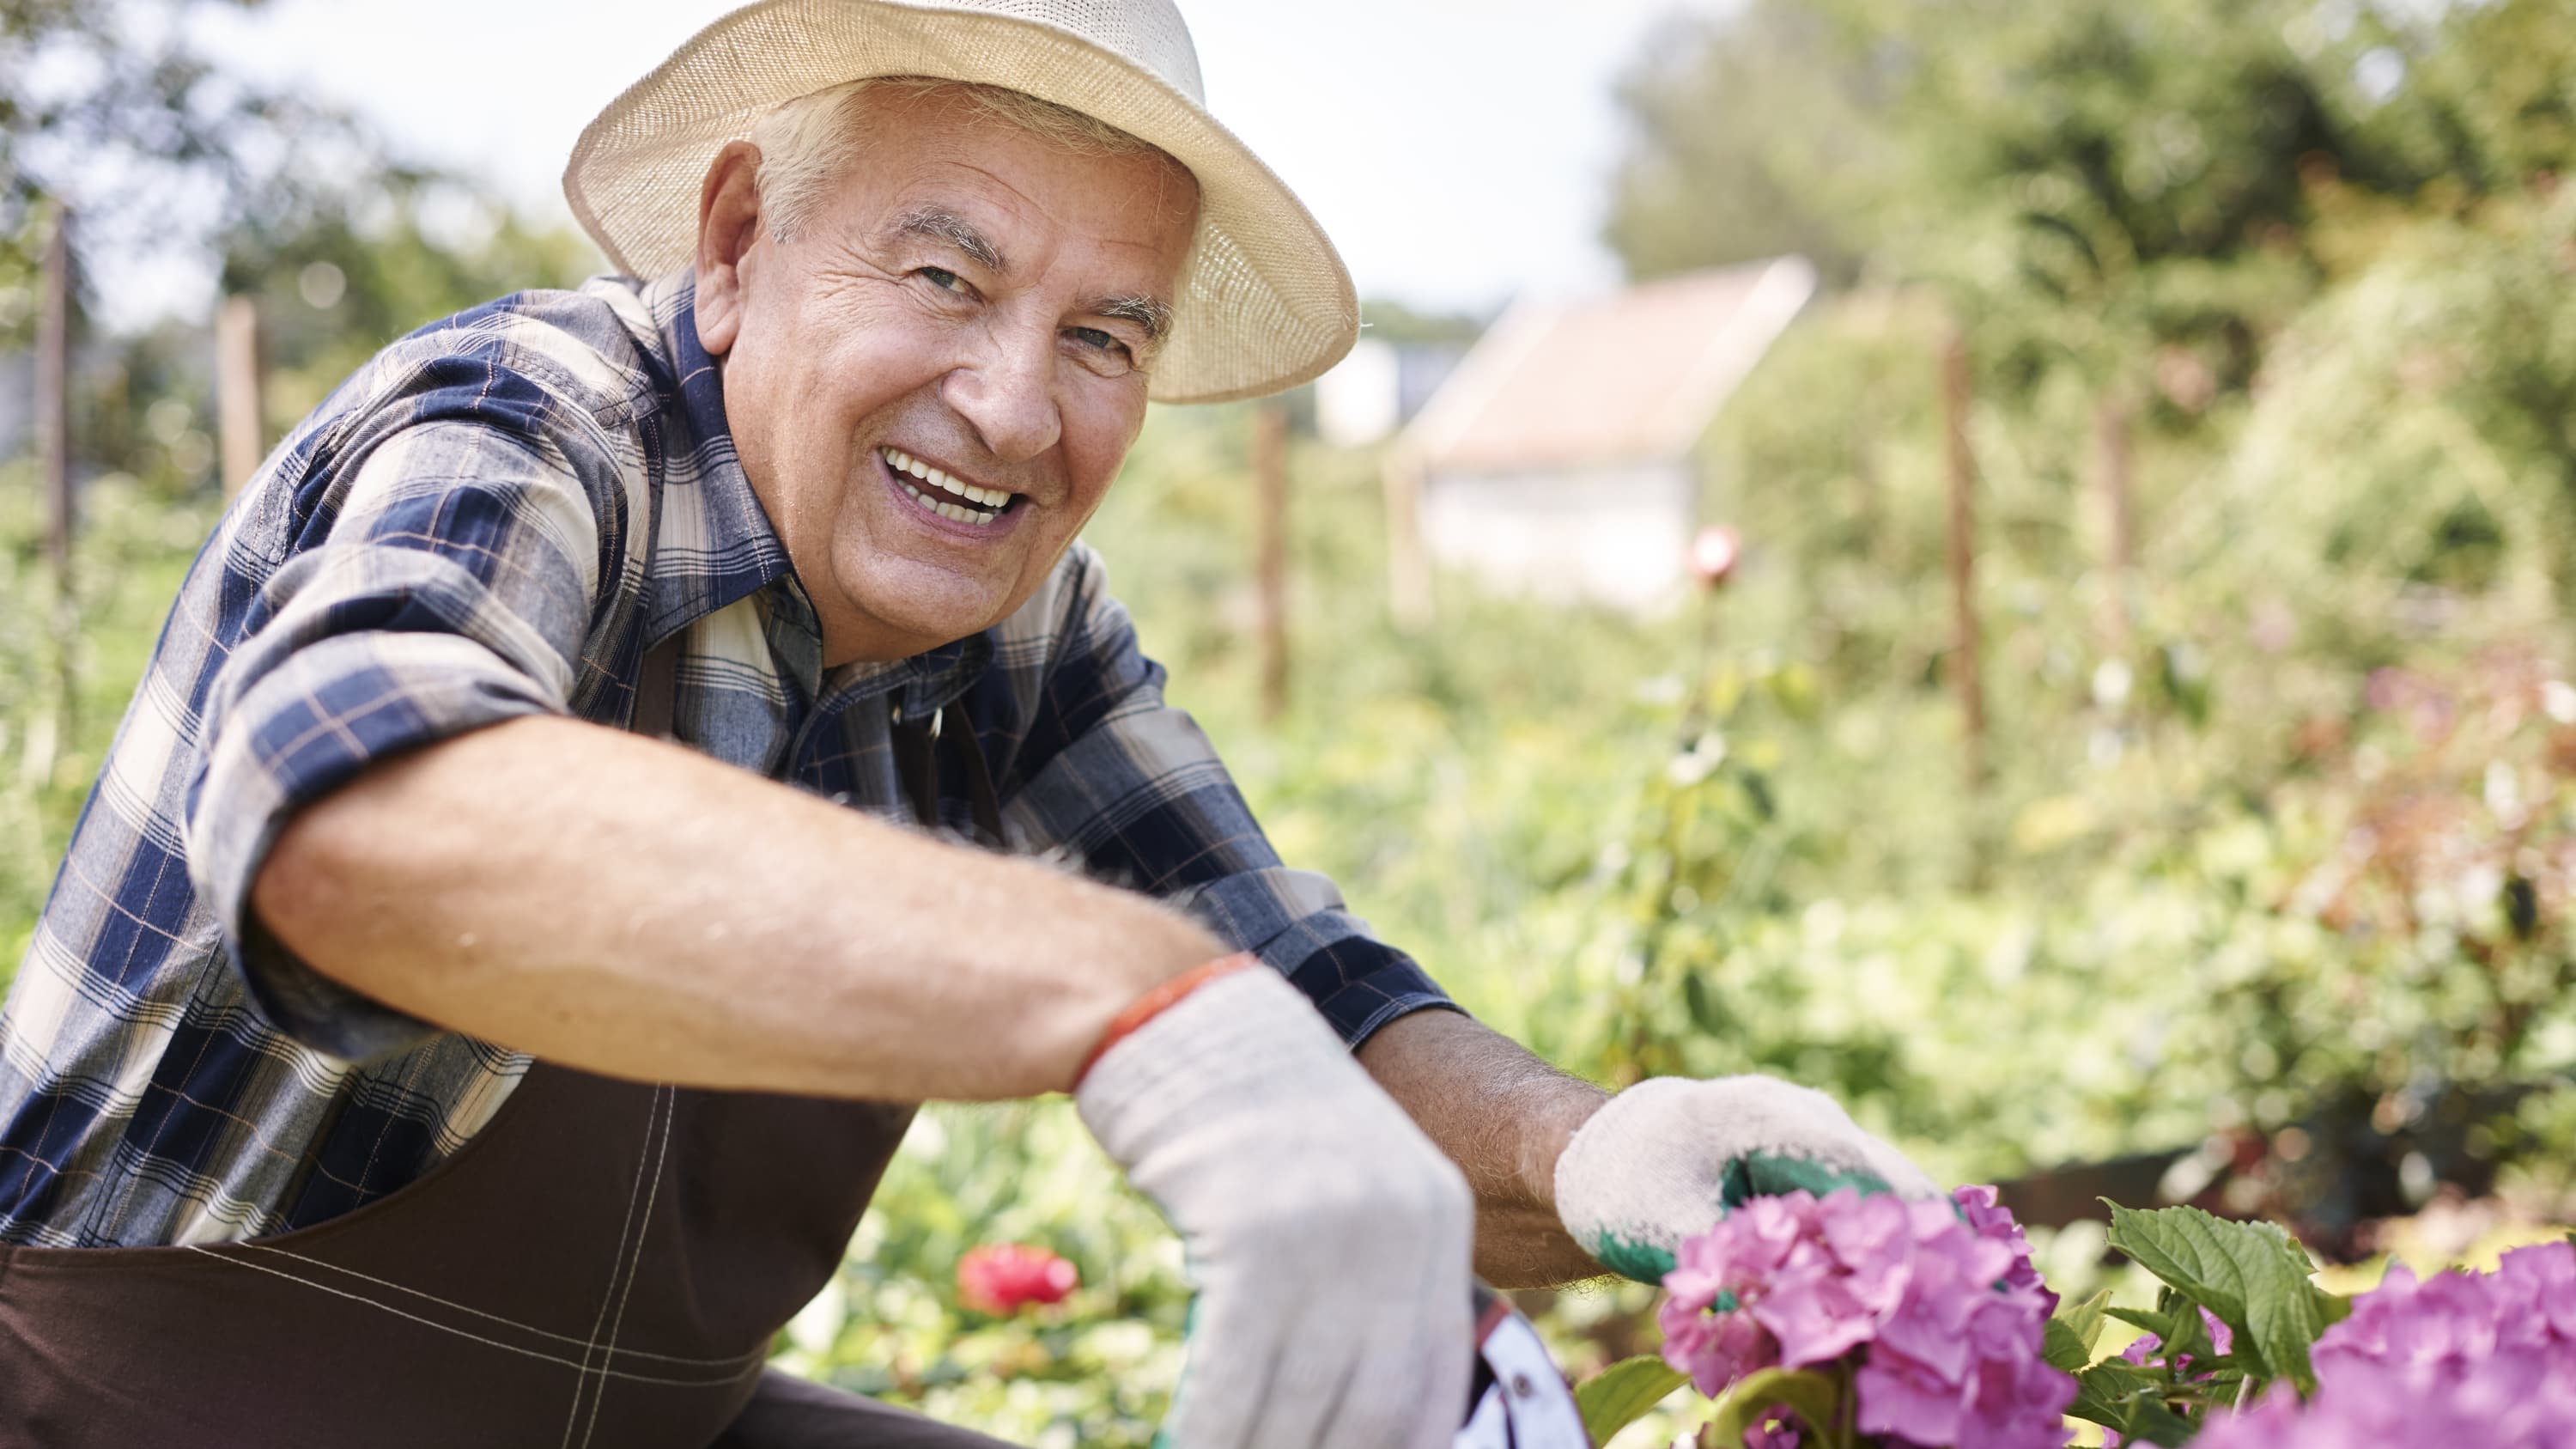 Smiling older man gardening and wearing a hat as sun protection, which could help prevent skin cancer and the need for radiation therapy later on.